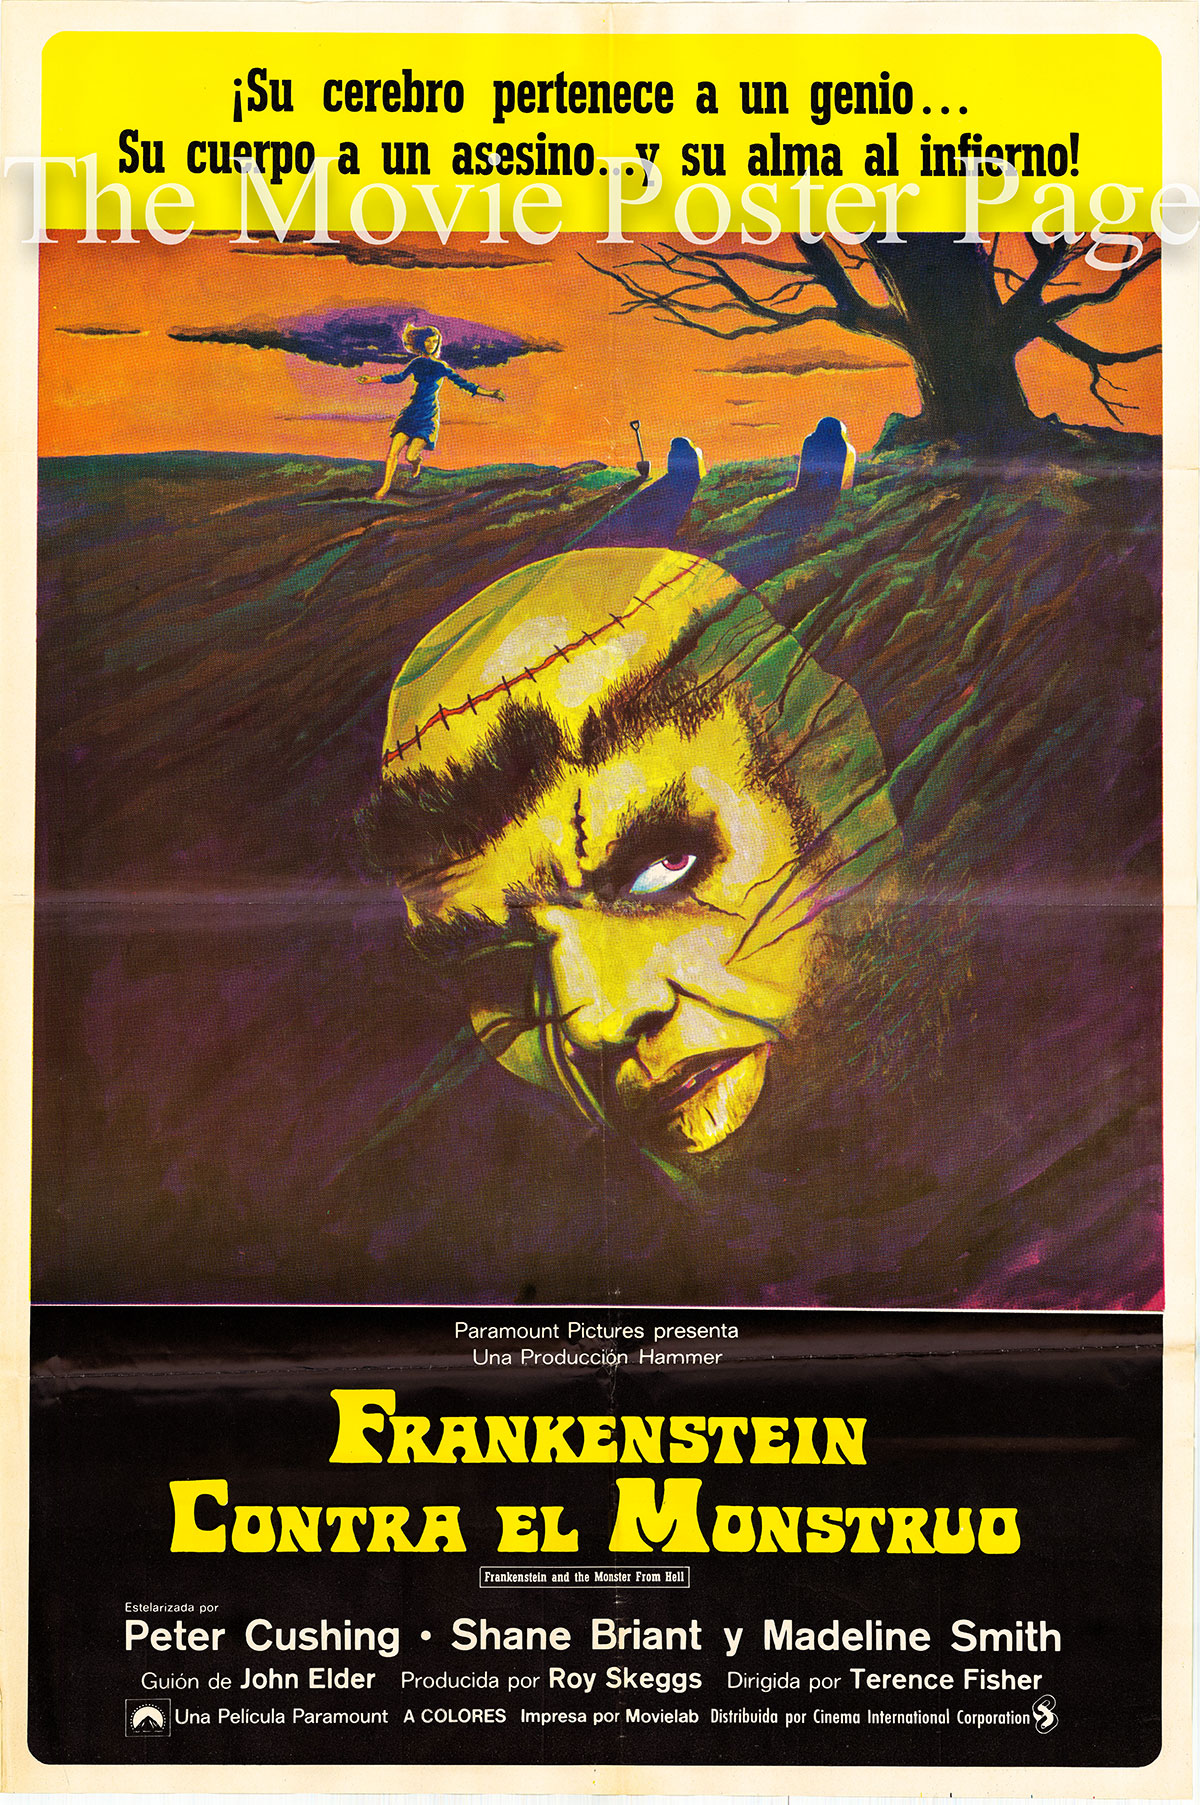 Pictured is a Spanish one-sheet poster for the 1974 Terence Fisher film Frankenstein and the Monster from Hell starring Peter Cushing as Baron Frankenstein.